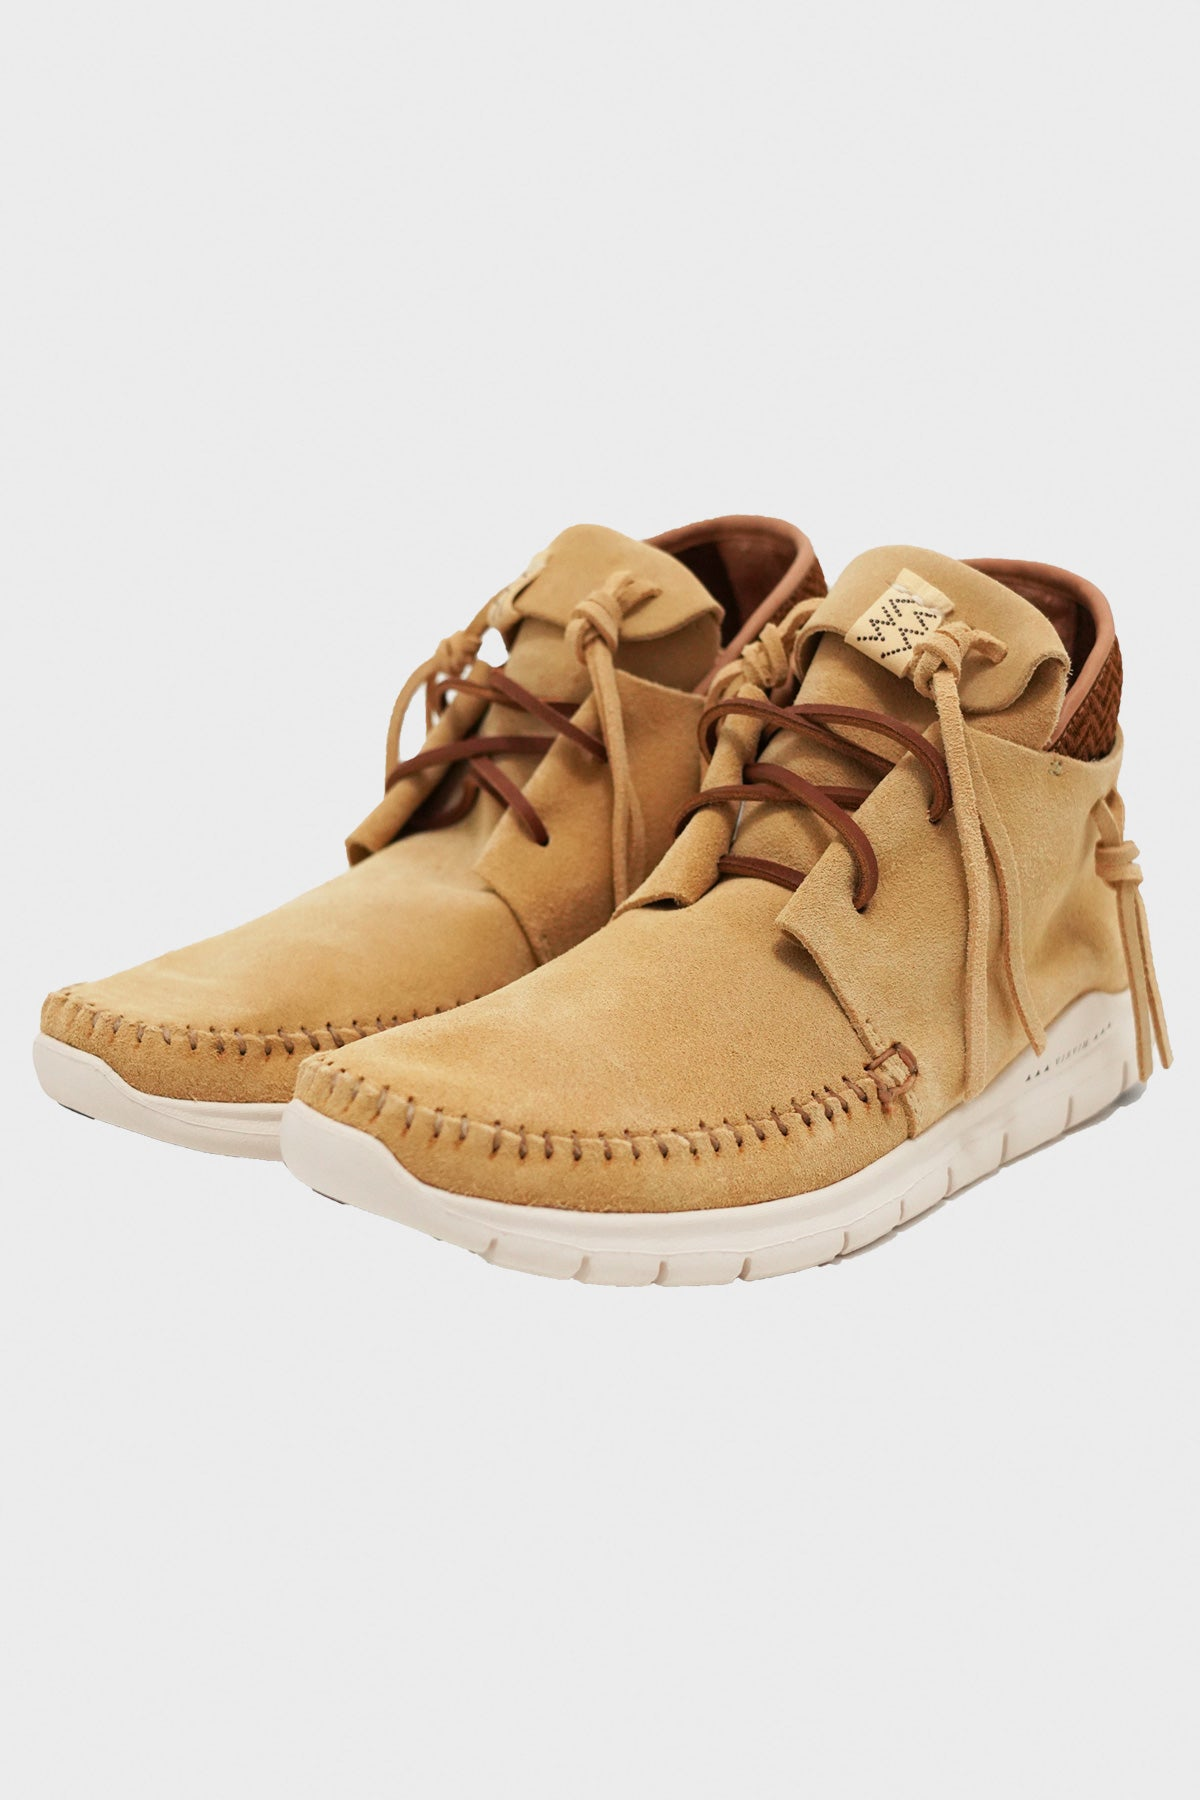 Visvim - Ute Moc Trainer Hi-Folk - Yellow - Canoe Club